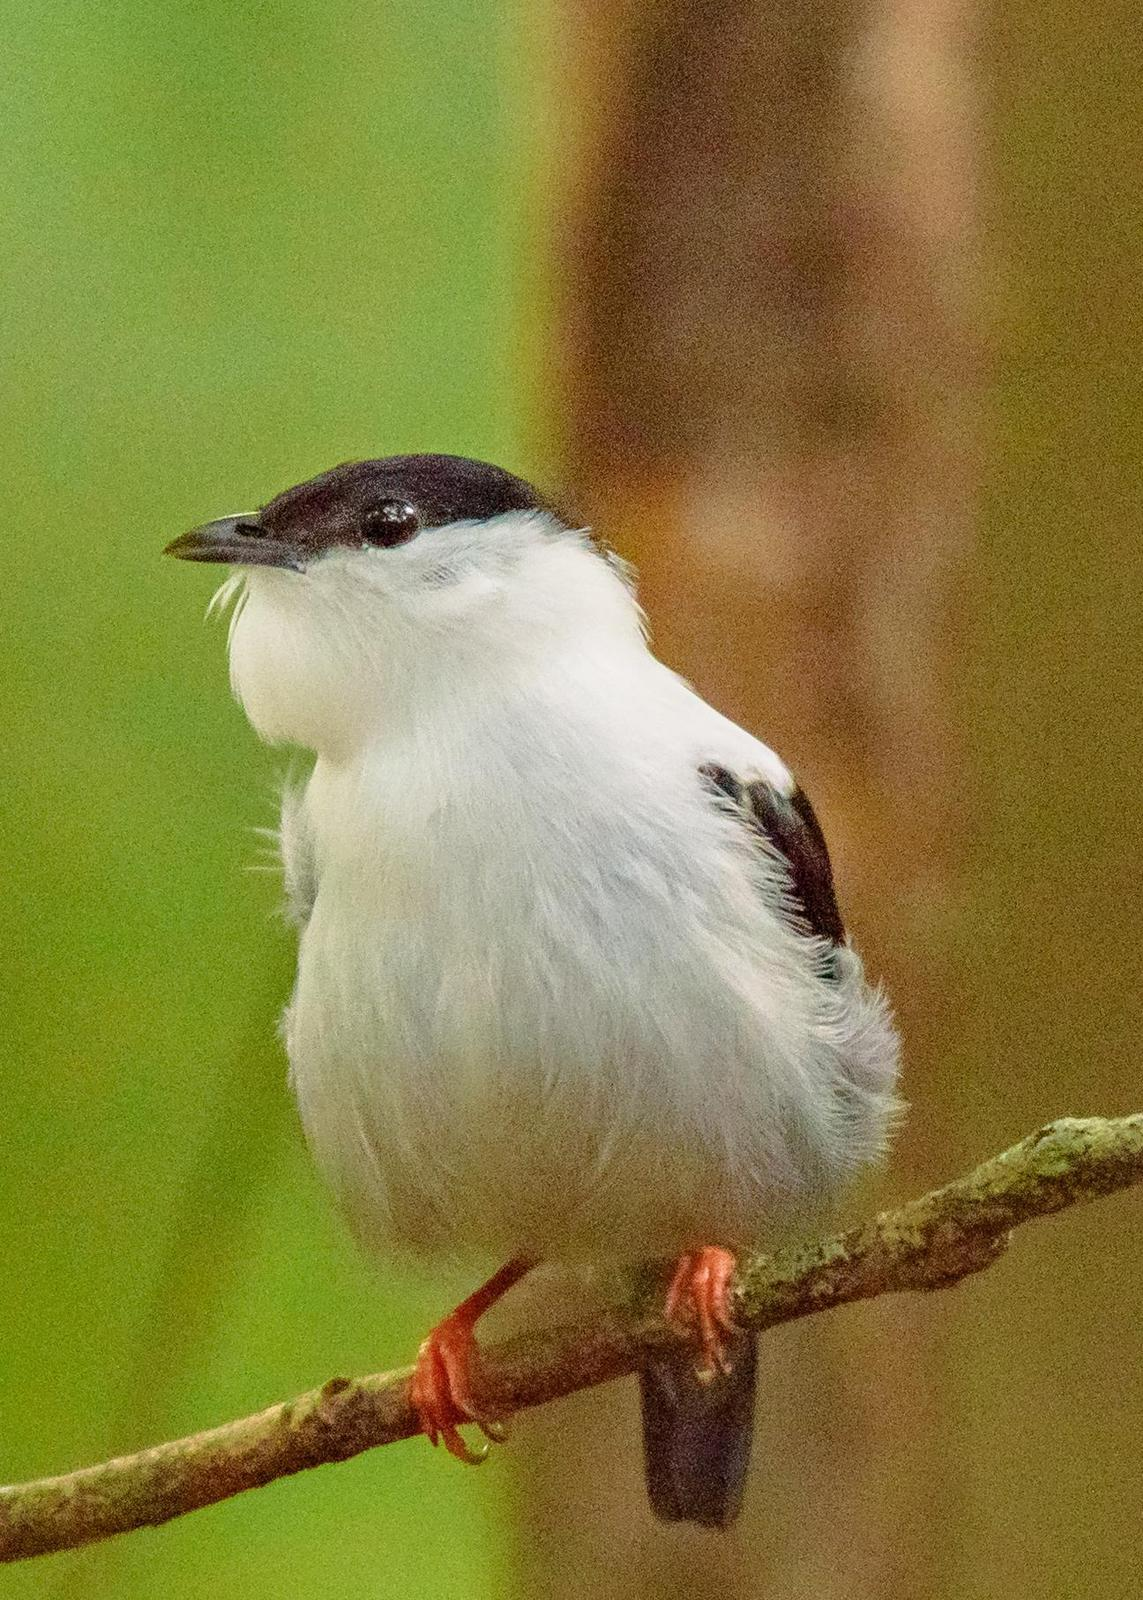 White-bearded Manakin Photo by Keshava Mysore